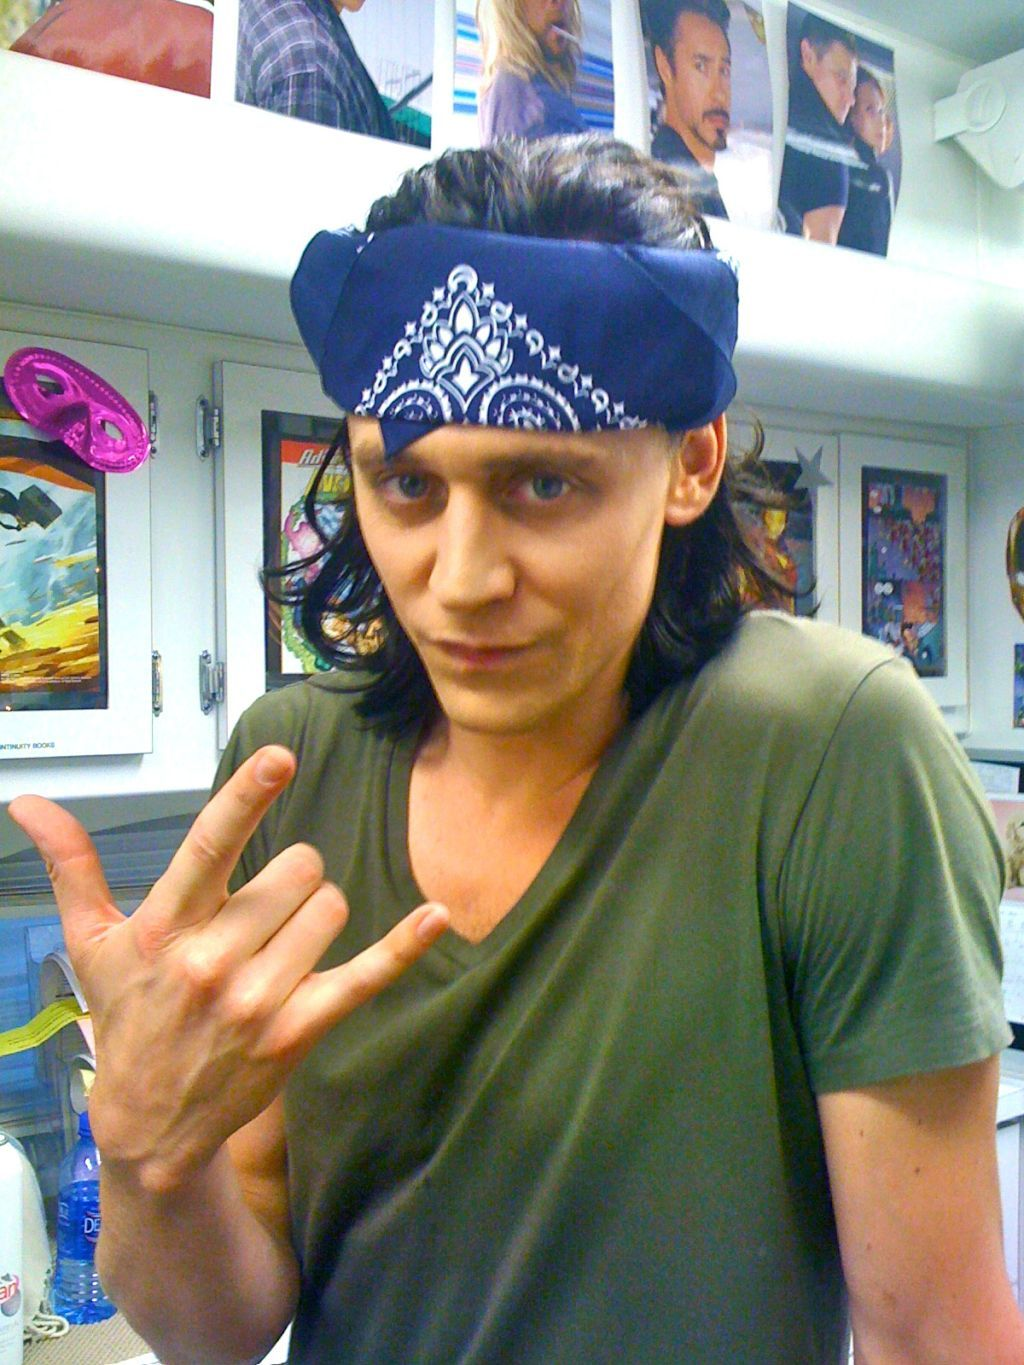 A year ago. June 2011, Albuquerque, NM. USA. #avengers [from Tom Hiddleston twitter]